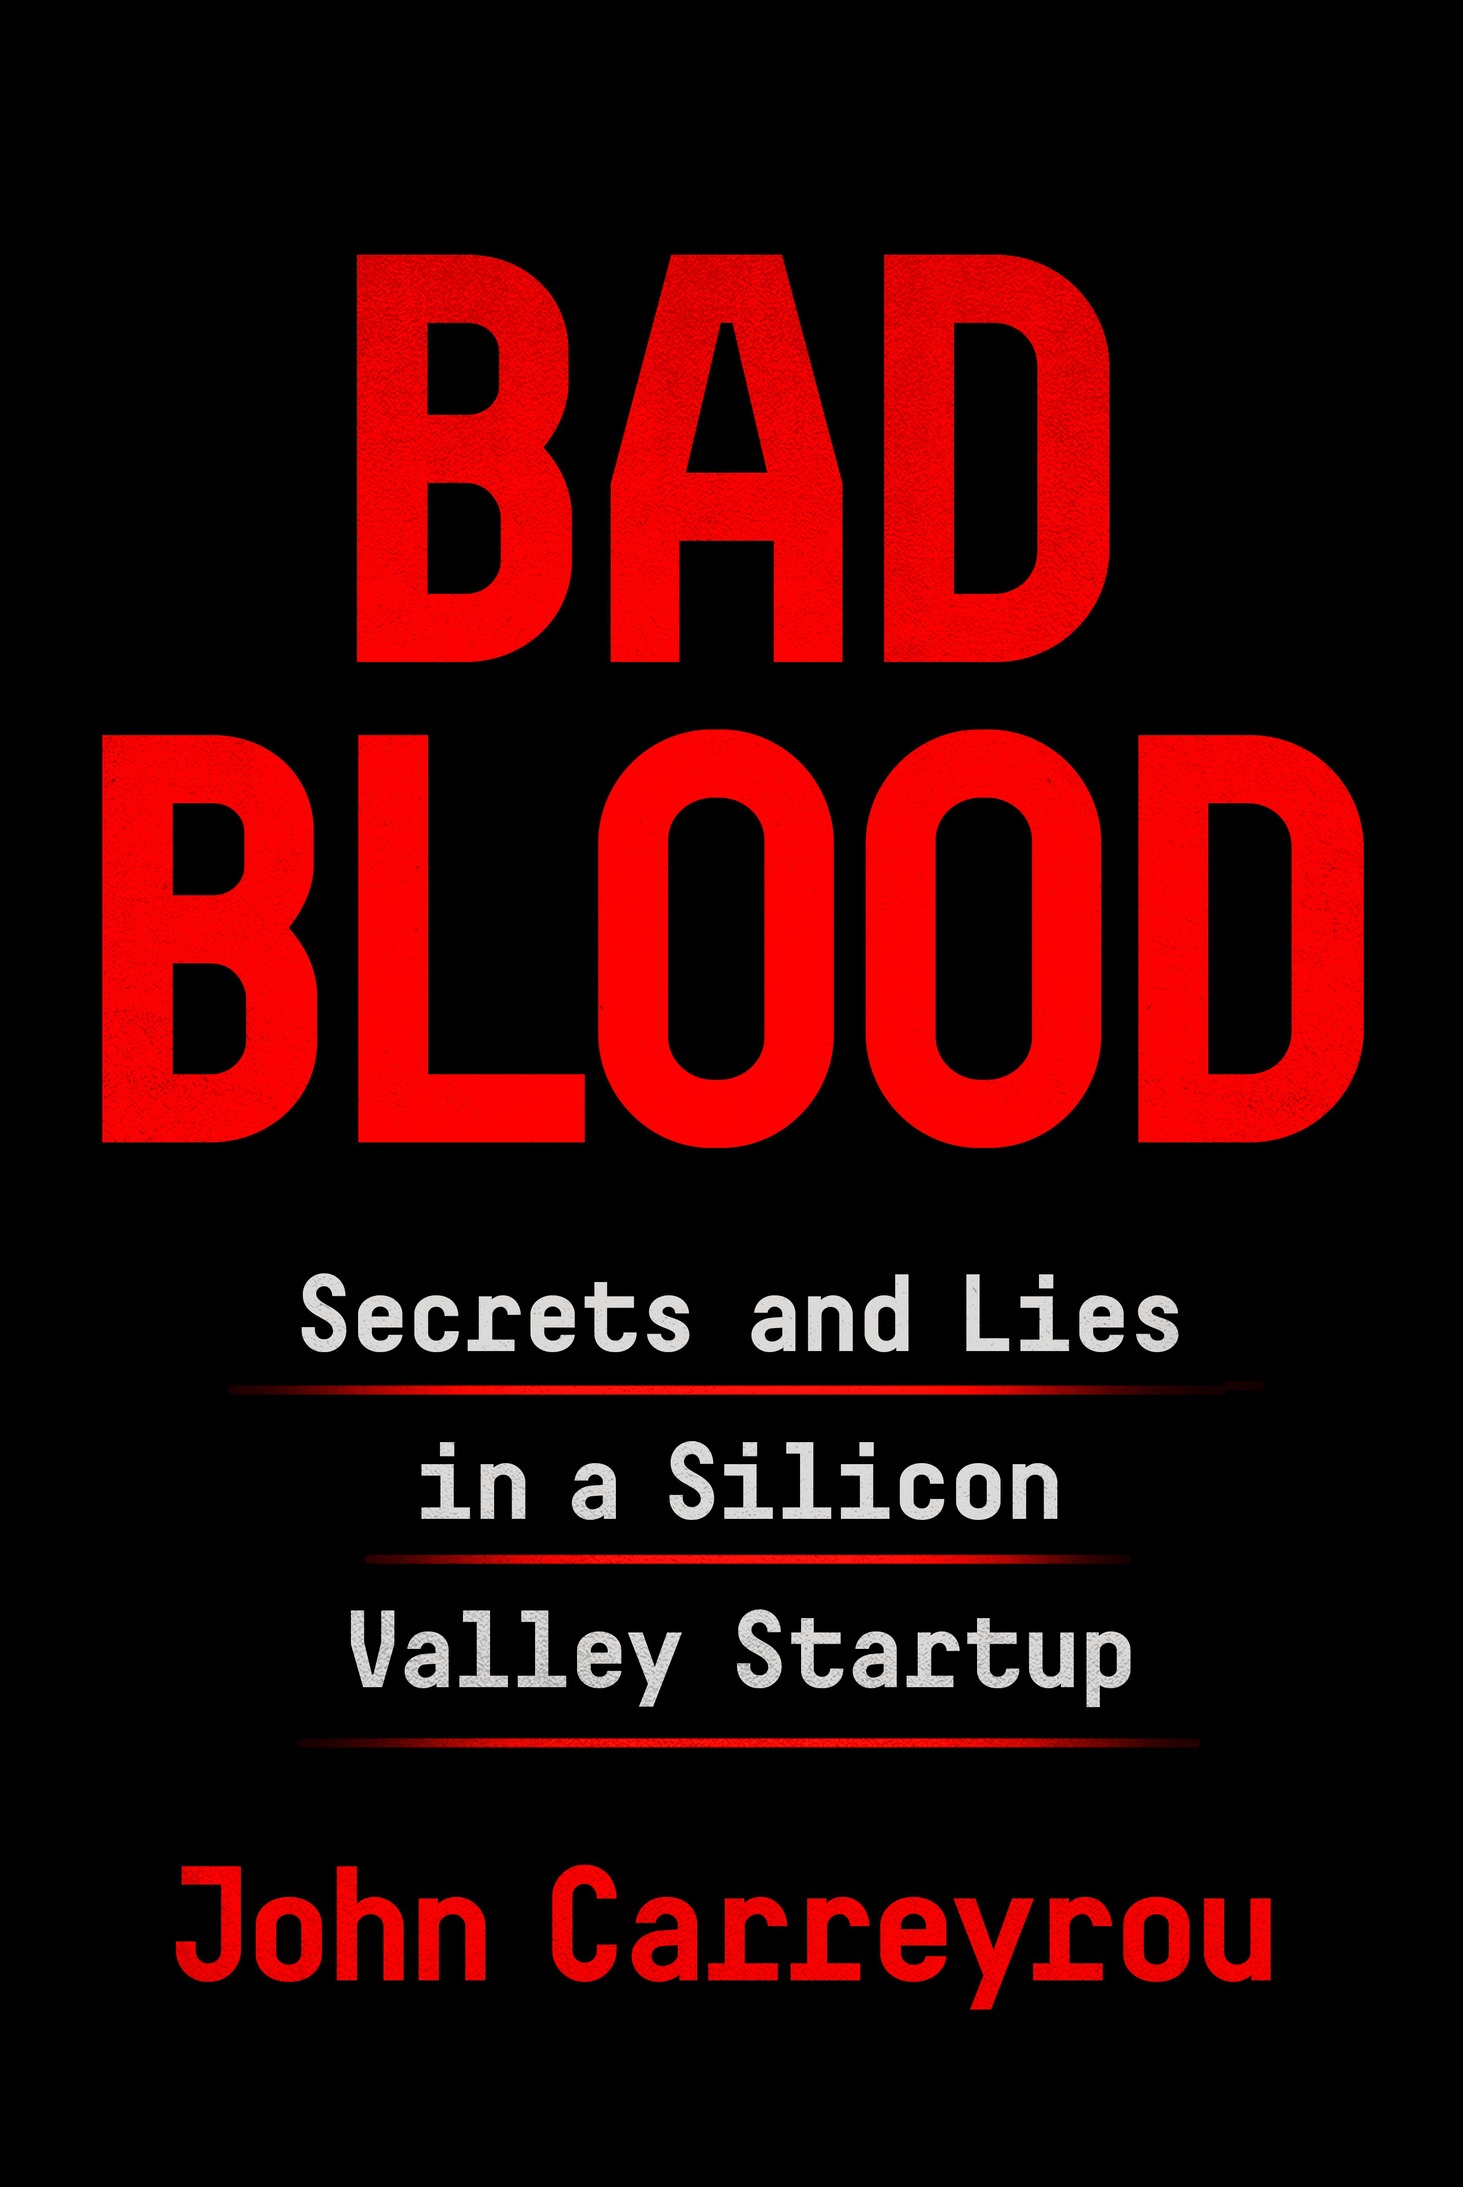 Bad Blood: Secrets and Lies in a Silicon Valley Startup - John Carreyrou [kindle] [mobi]